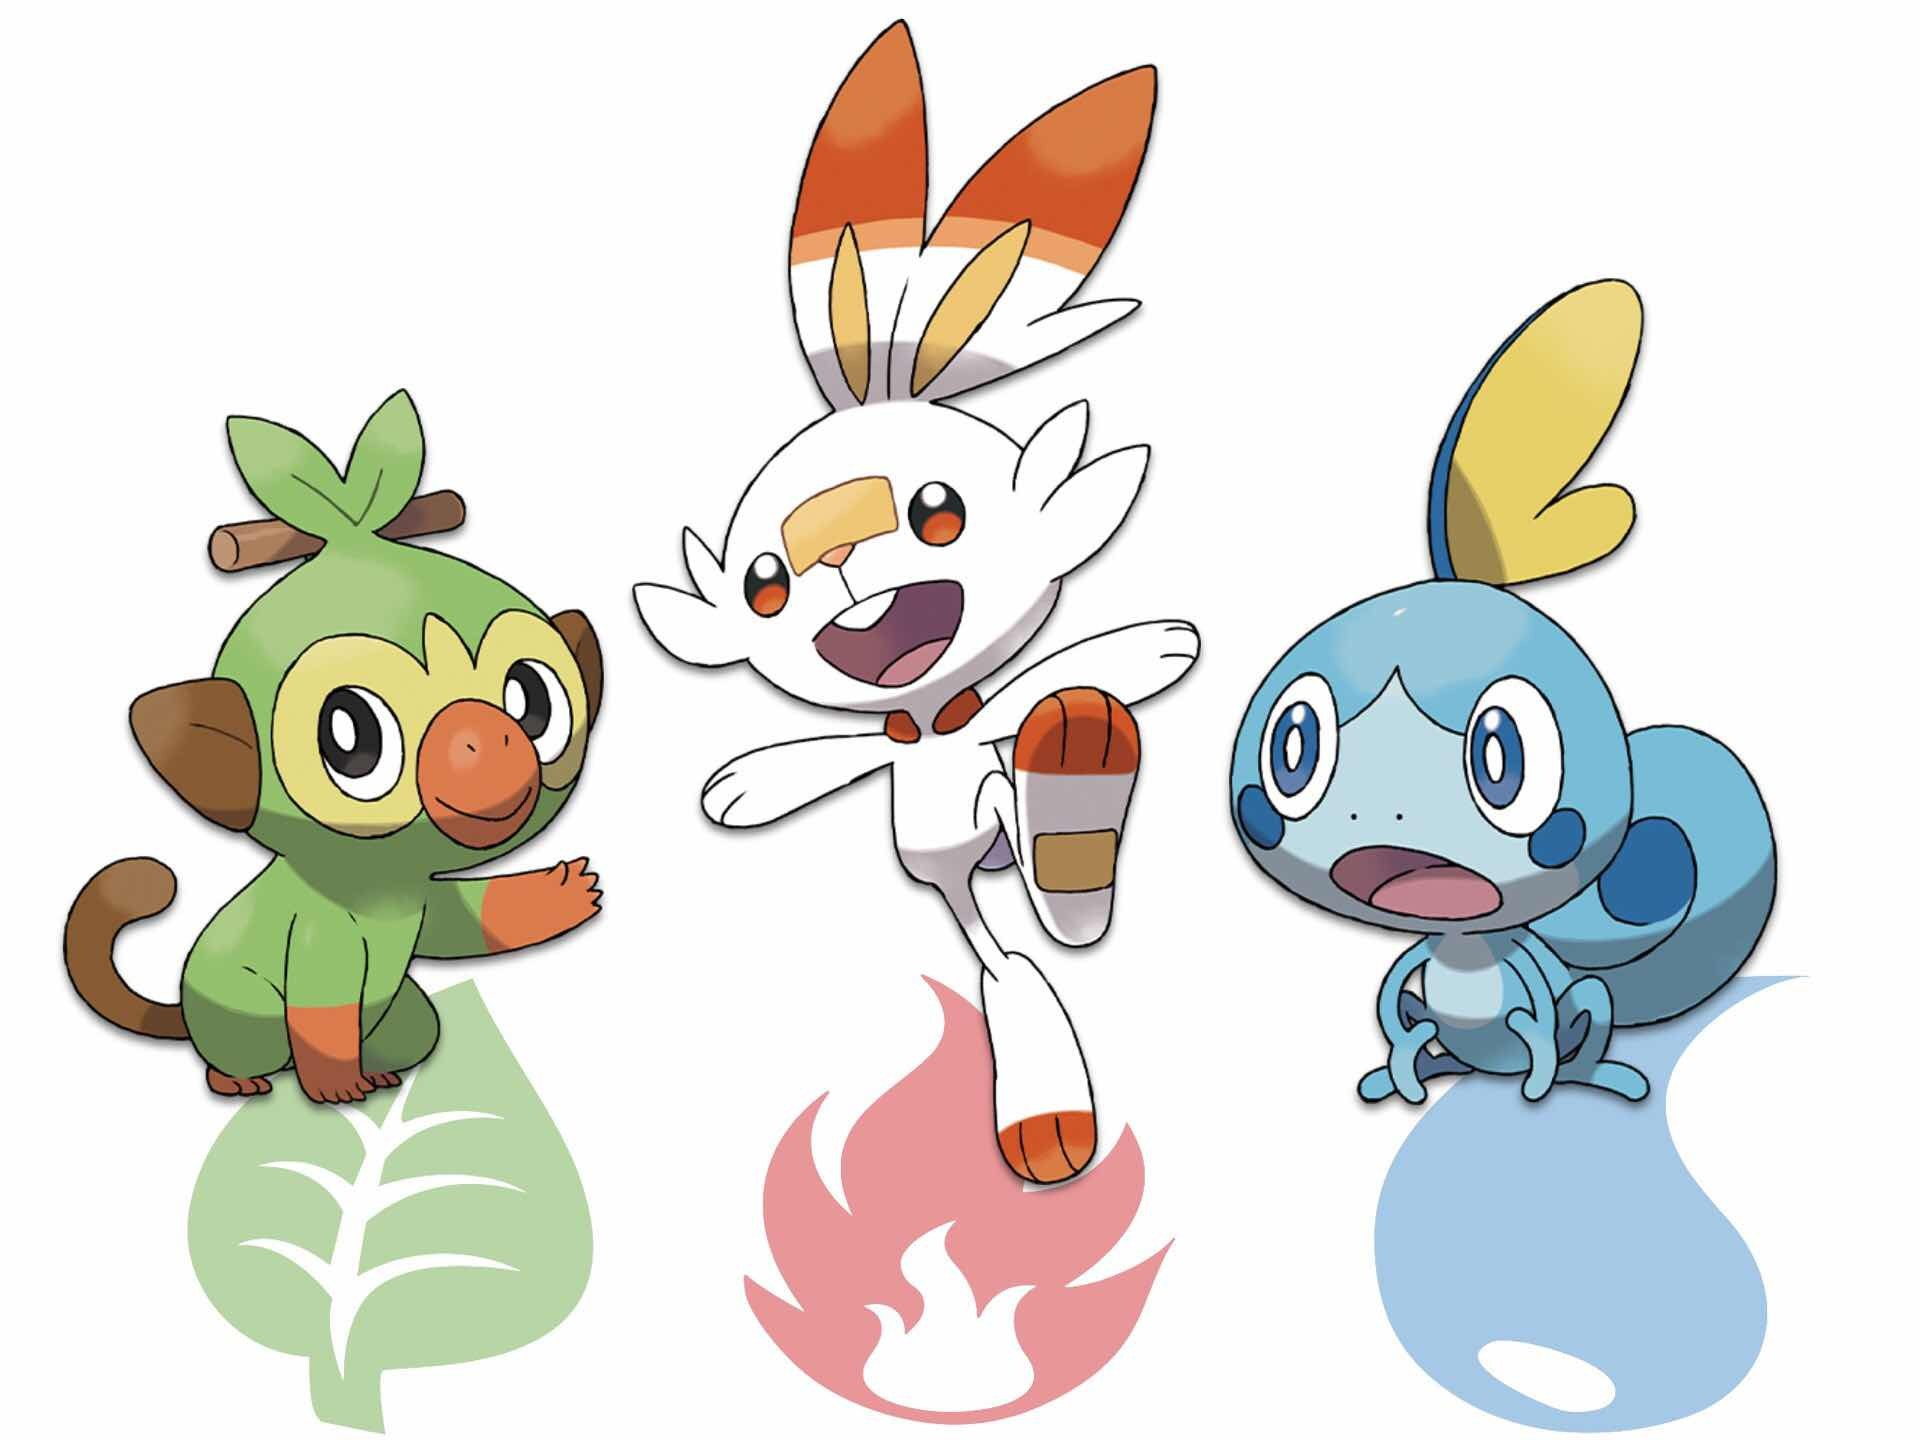 From left to right: Grookey [Grass], Scorbunny [Fire], and Sobble [Water]